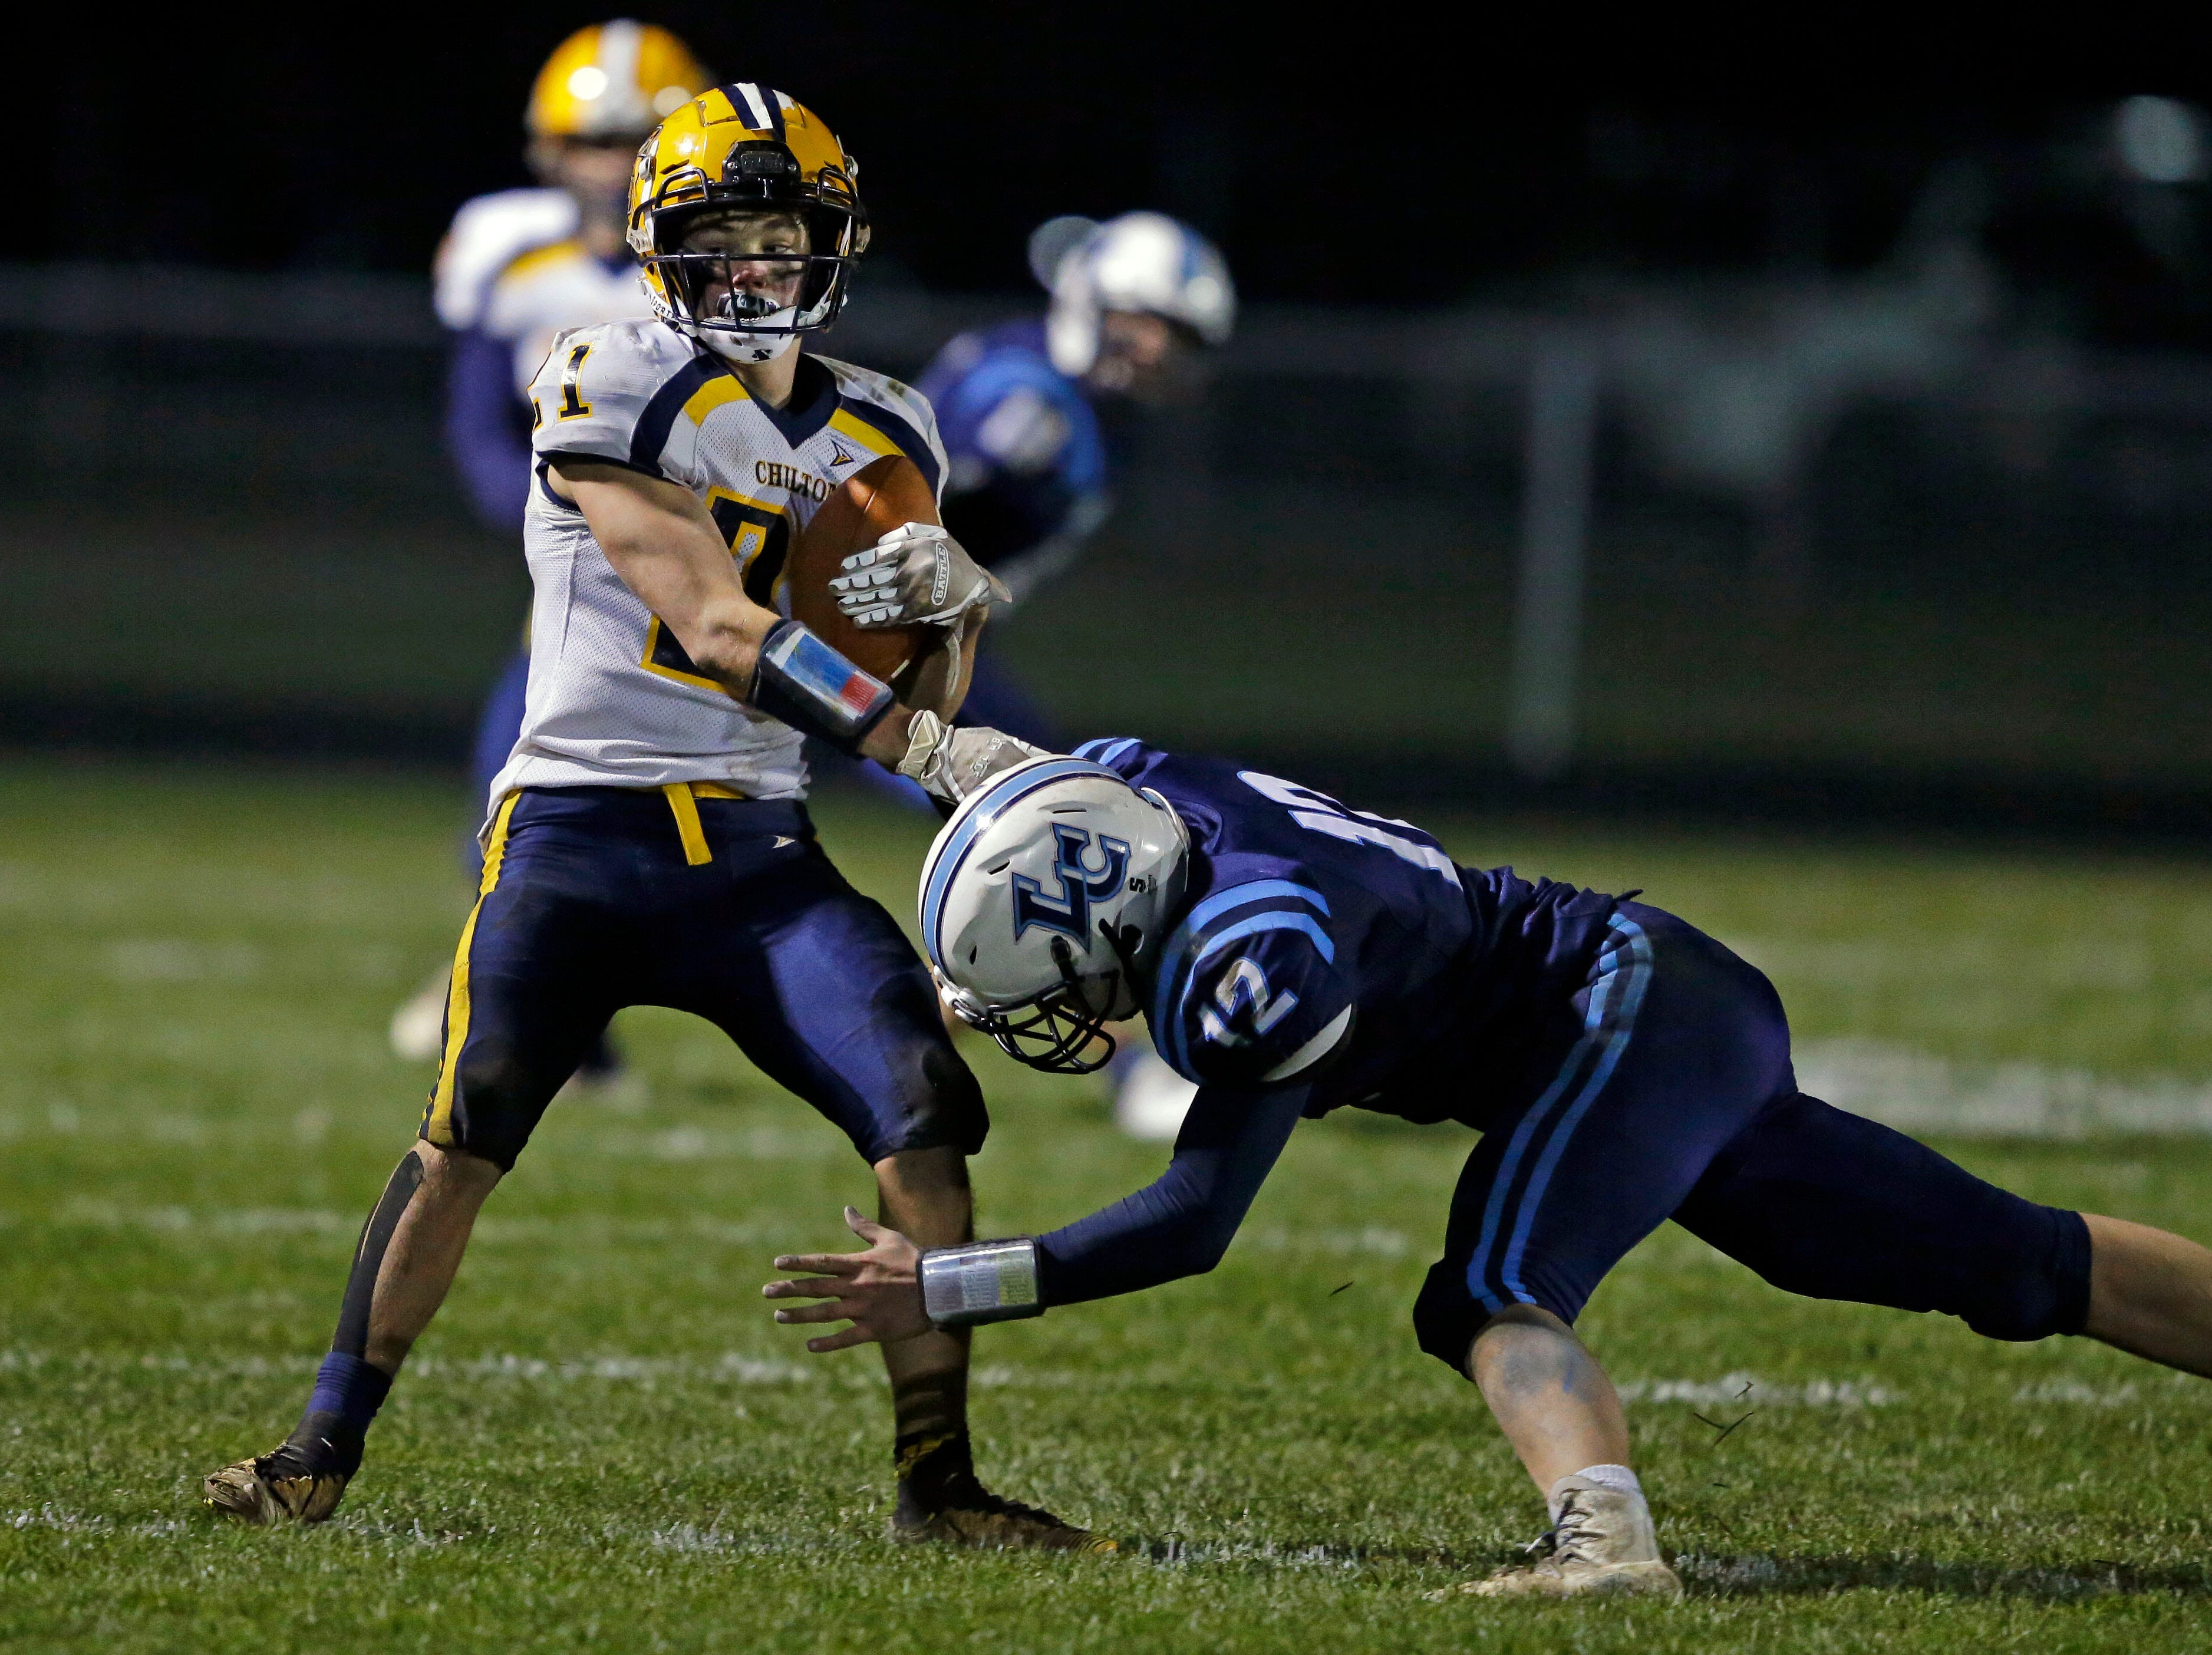 Gaven Lisowe of Chilton tries to spin away from Tate Huss of Little Chute in a WIAA Division 4 second round football playoff game Friday, October 26, 2018, at Little Chute High School in Little Chute, Wis.Ron Page/USA TODAY NETWORK-Wisconsin